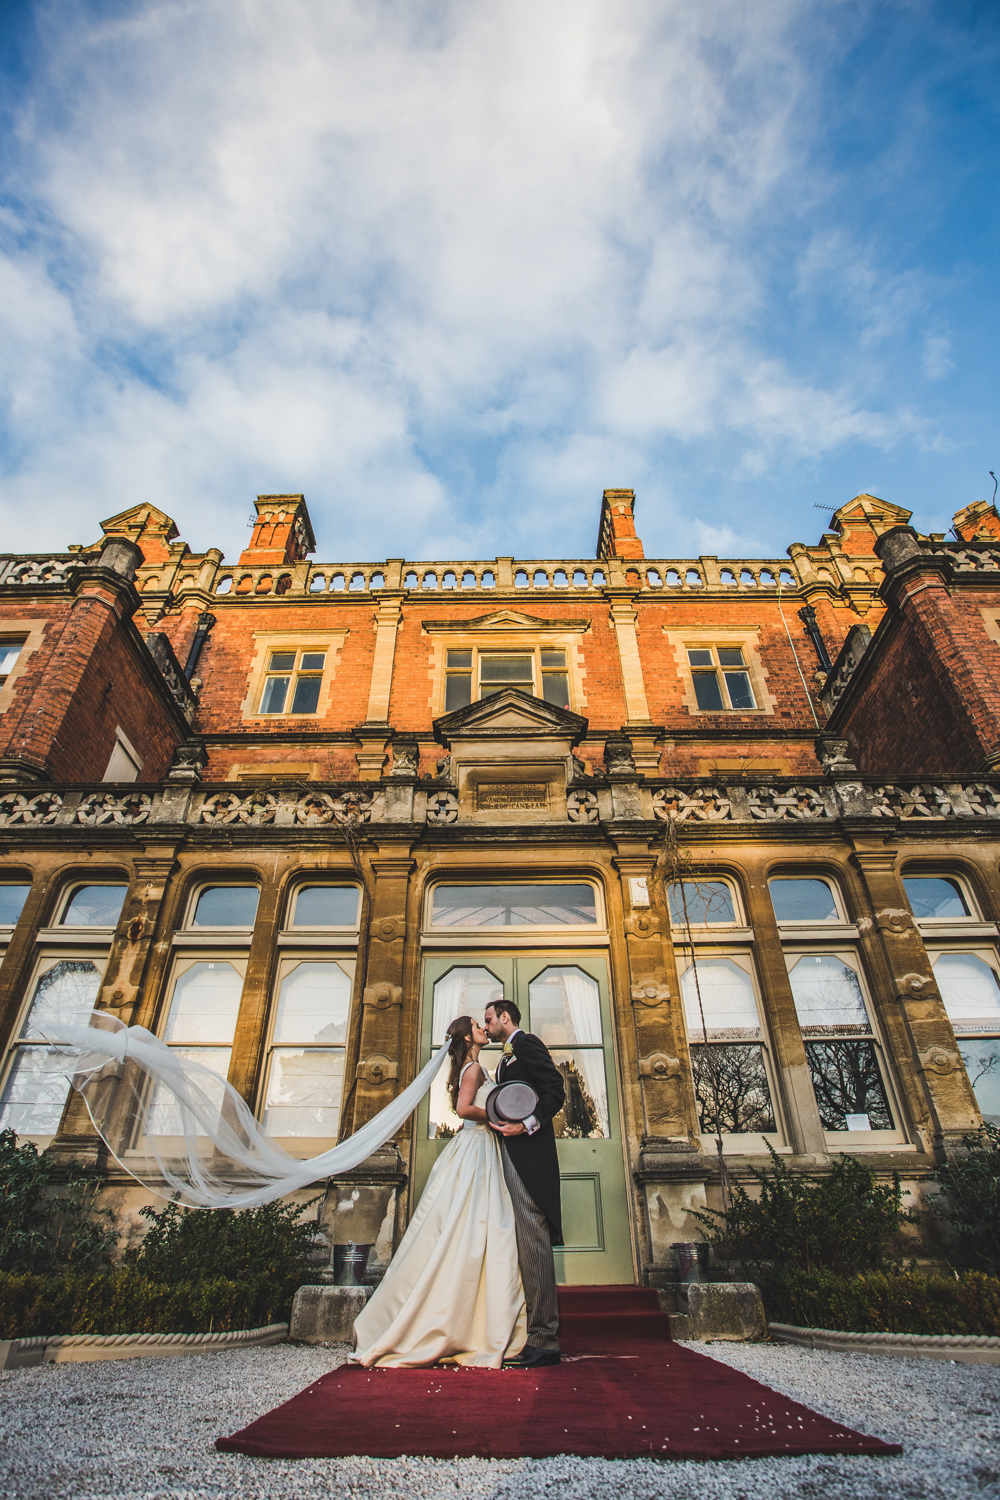 rossington hall wedding photographer photogenick blog58.jpg